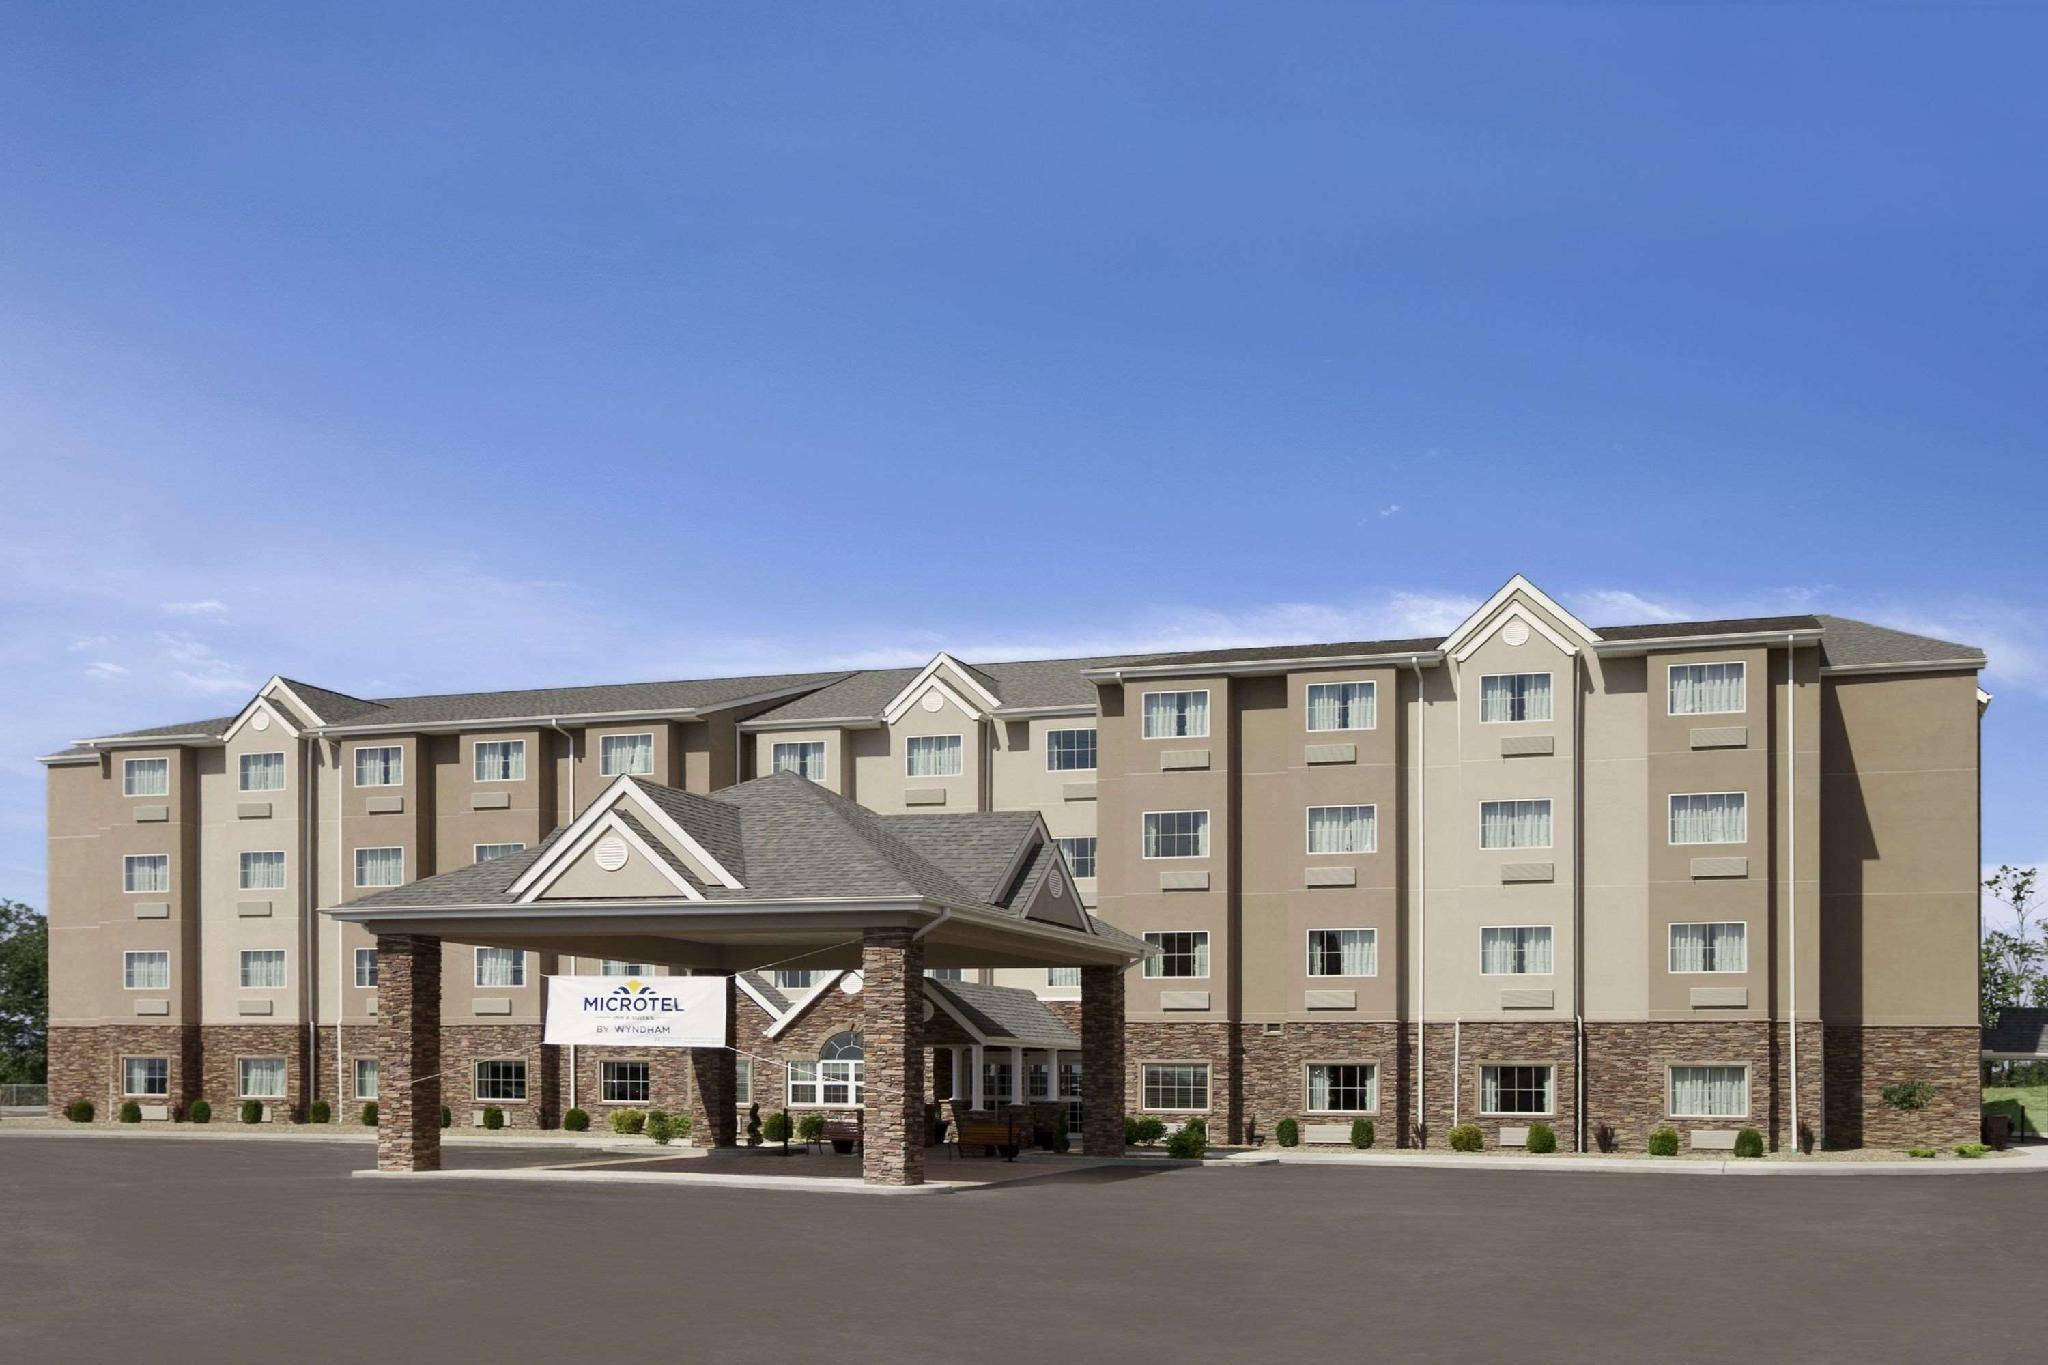 Microtel Inn And Suites By Wyndham St Clairsville